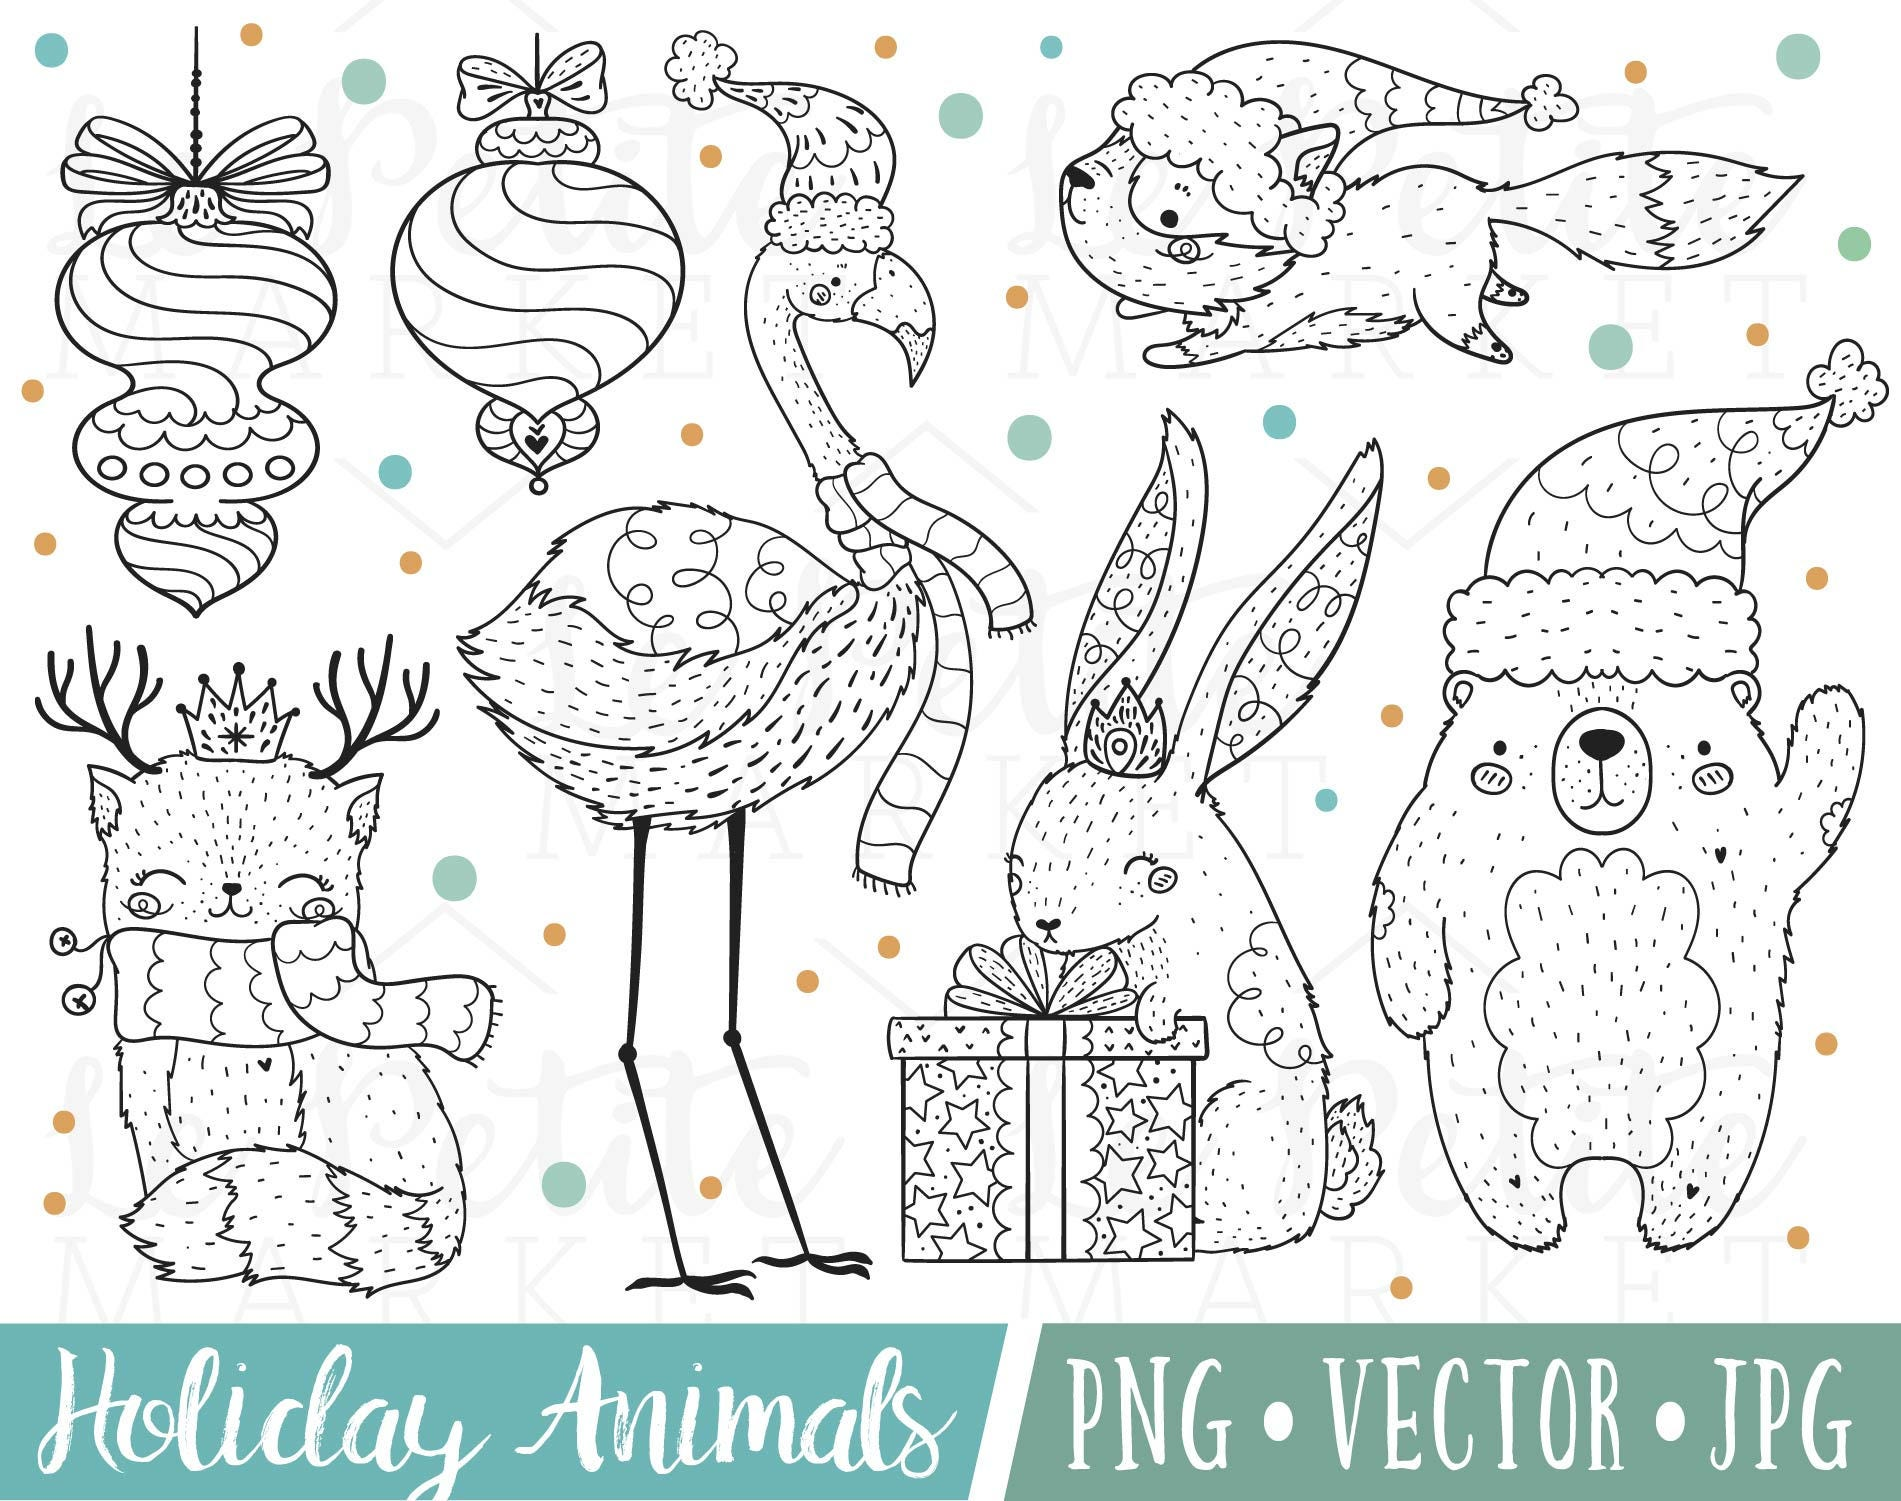 Cute Christmas Animals Clipart Cute Winter Animals Clipart | Etsy